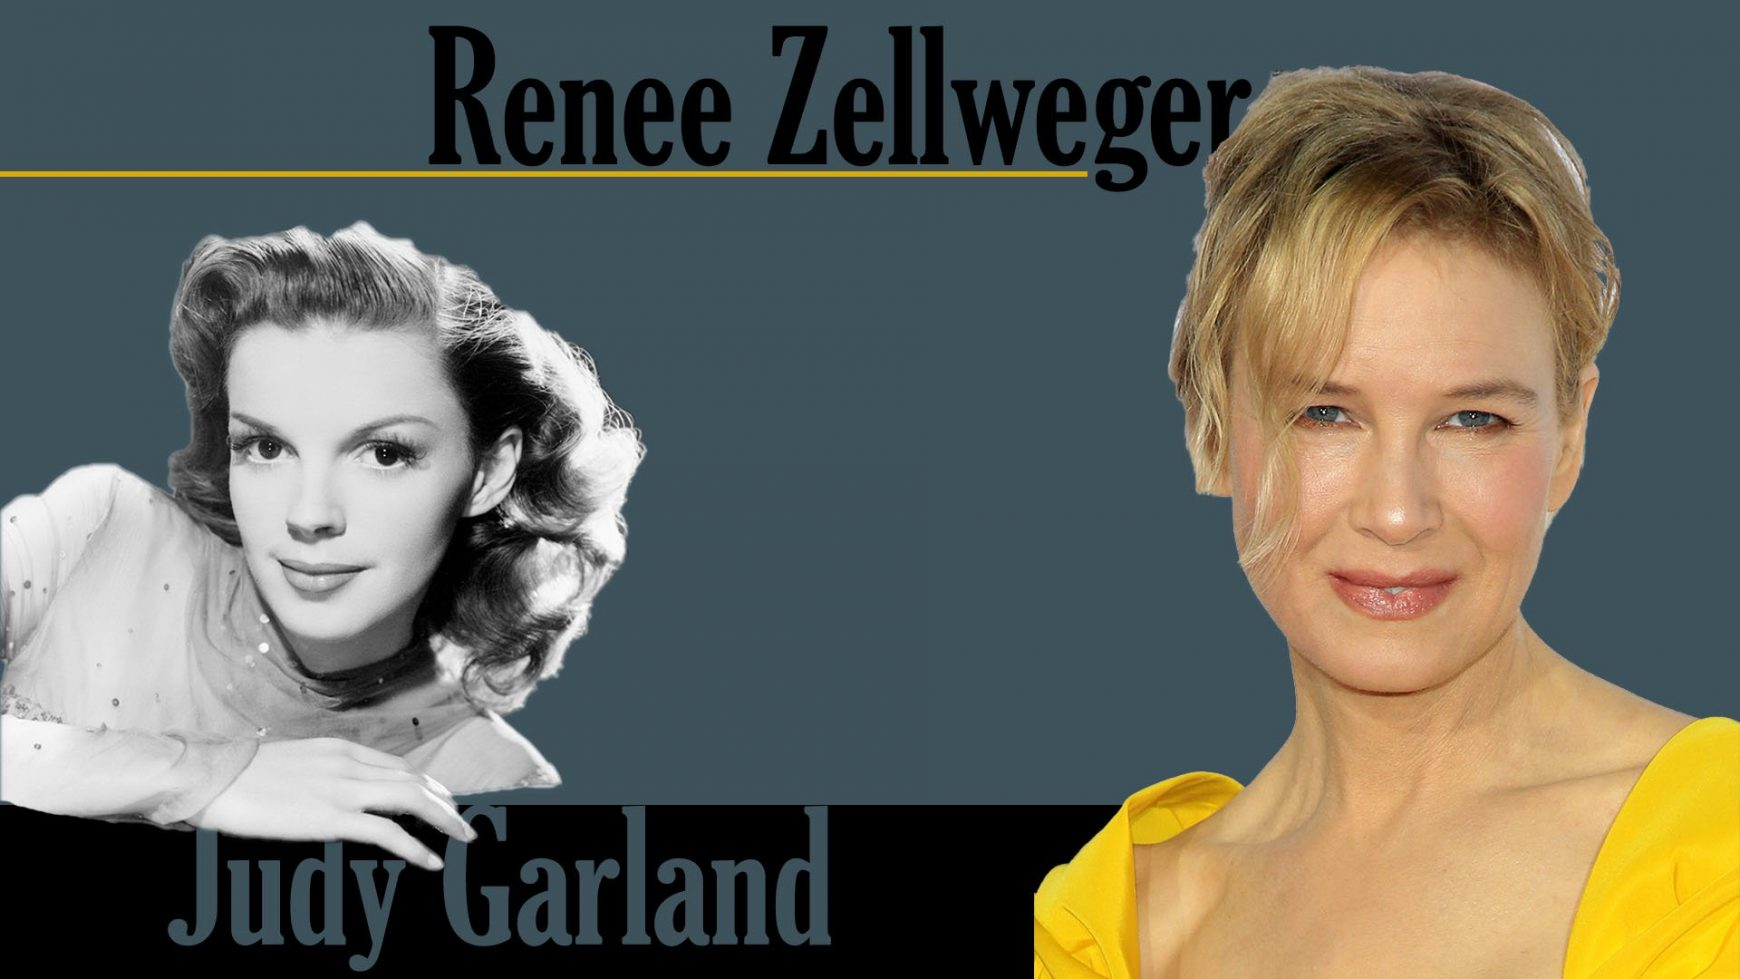 FIRST LOOK: RENEE ZELLWEGER AS JUDY GARLAND FOR UPCOMING BIOPIC